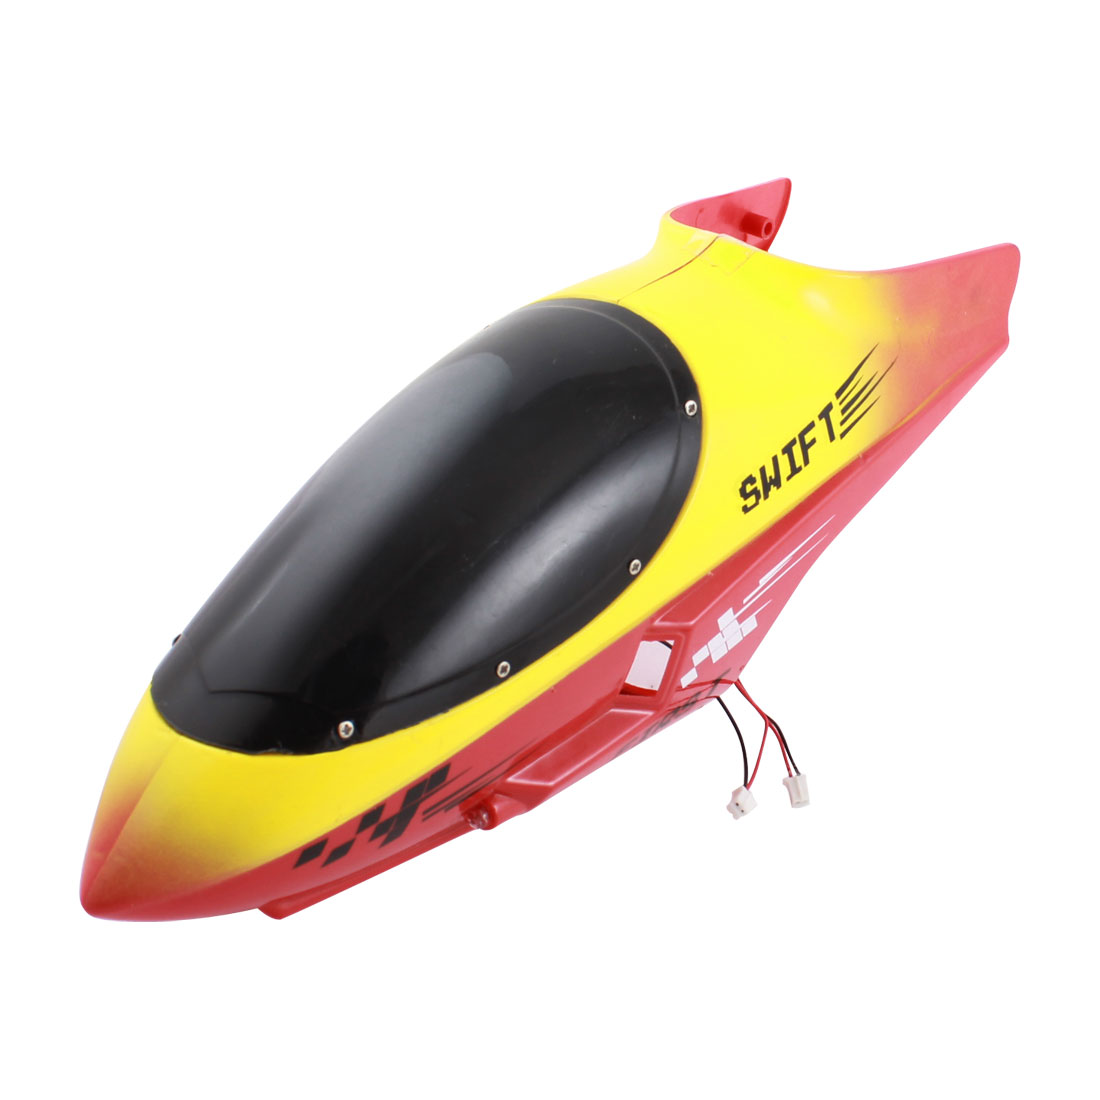 RC Radio Control Helicopter Part Yellow Plastic Canopy Head Cover Shell 28cm Length for FQ777-502